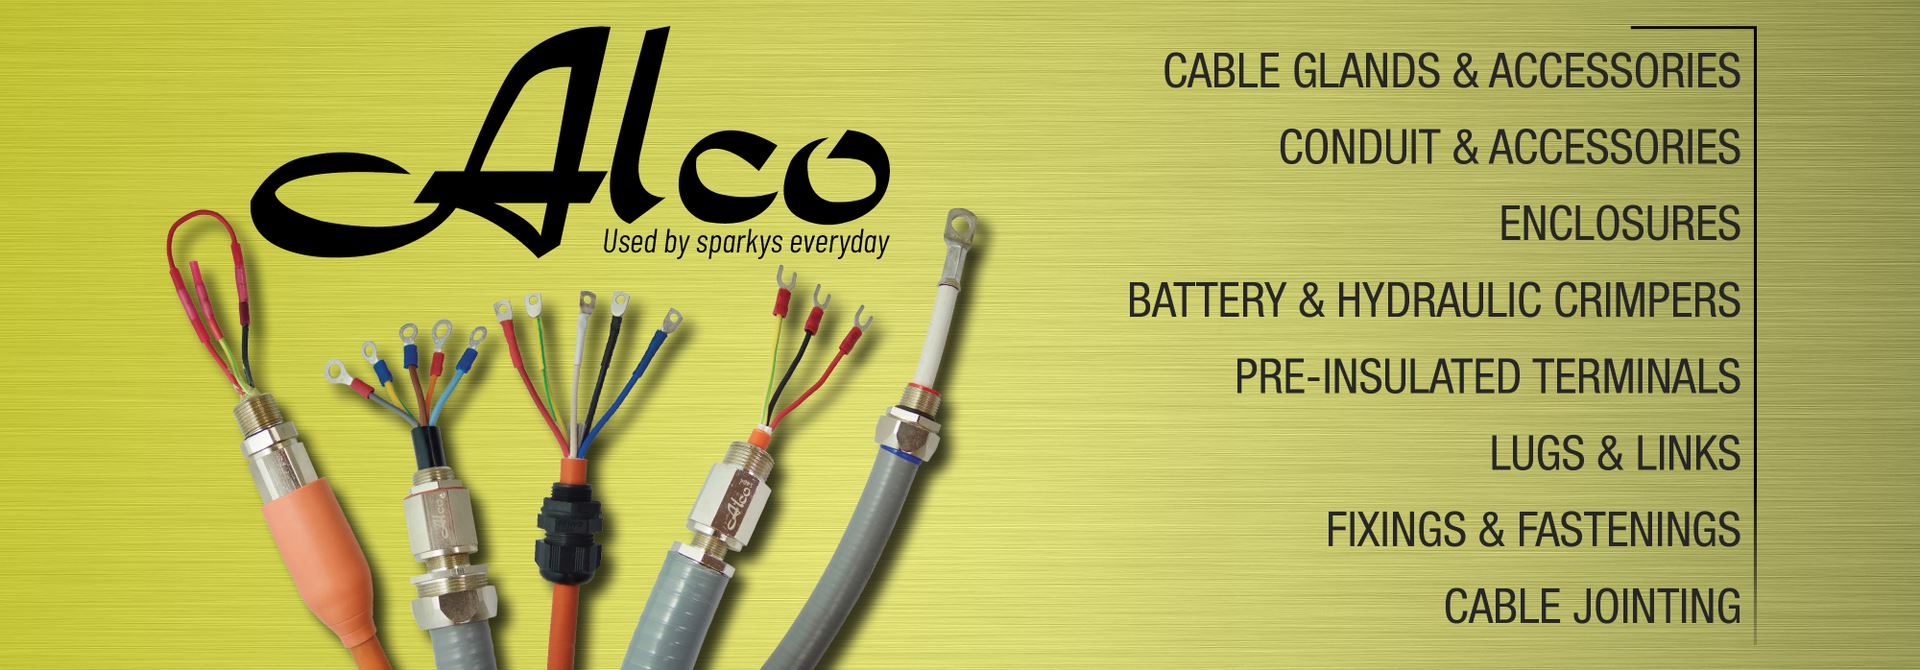 Alco - Used by sparkys everyday